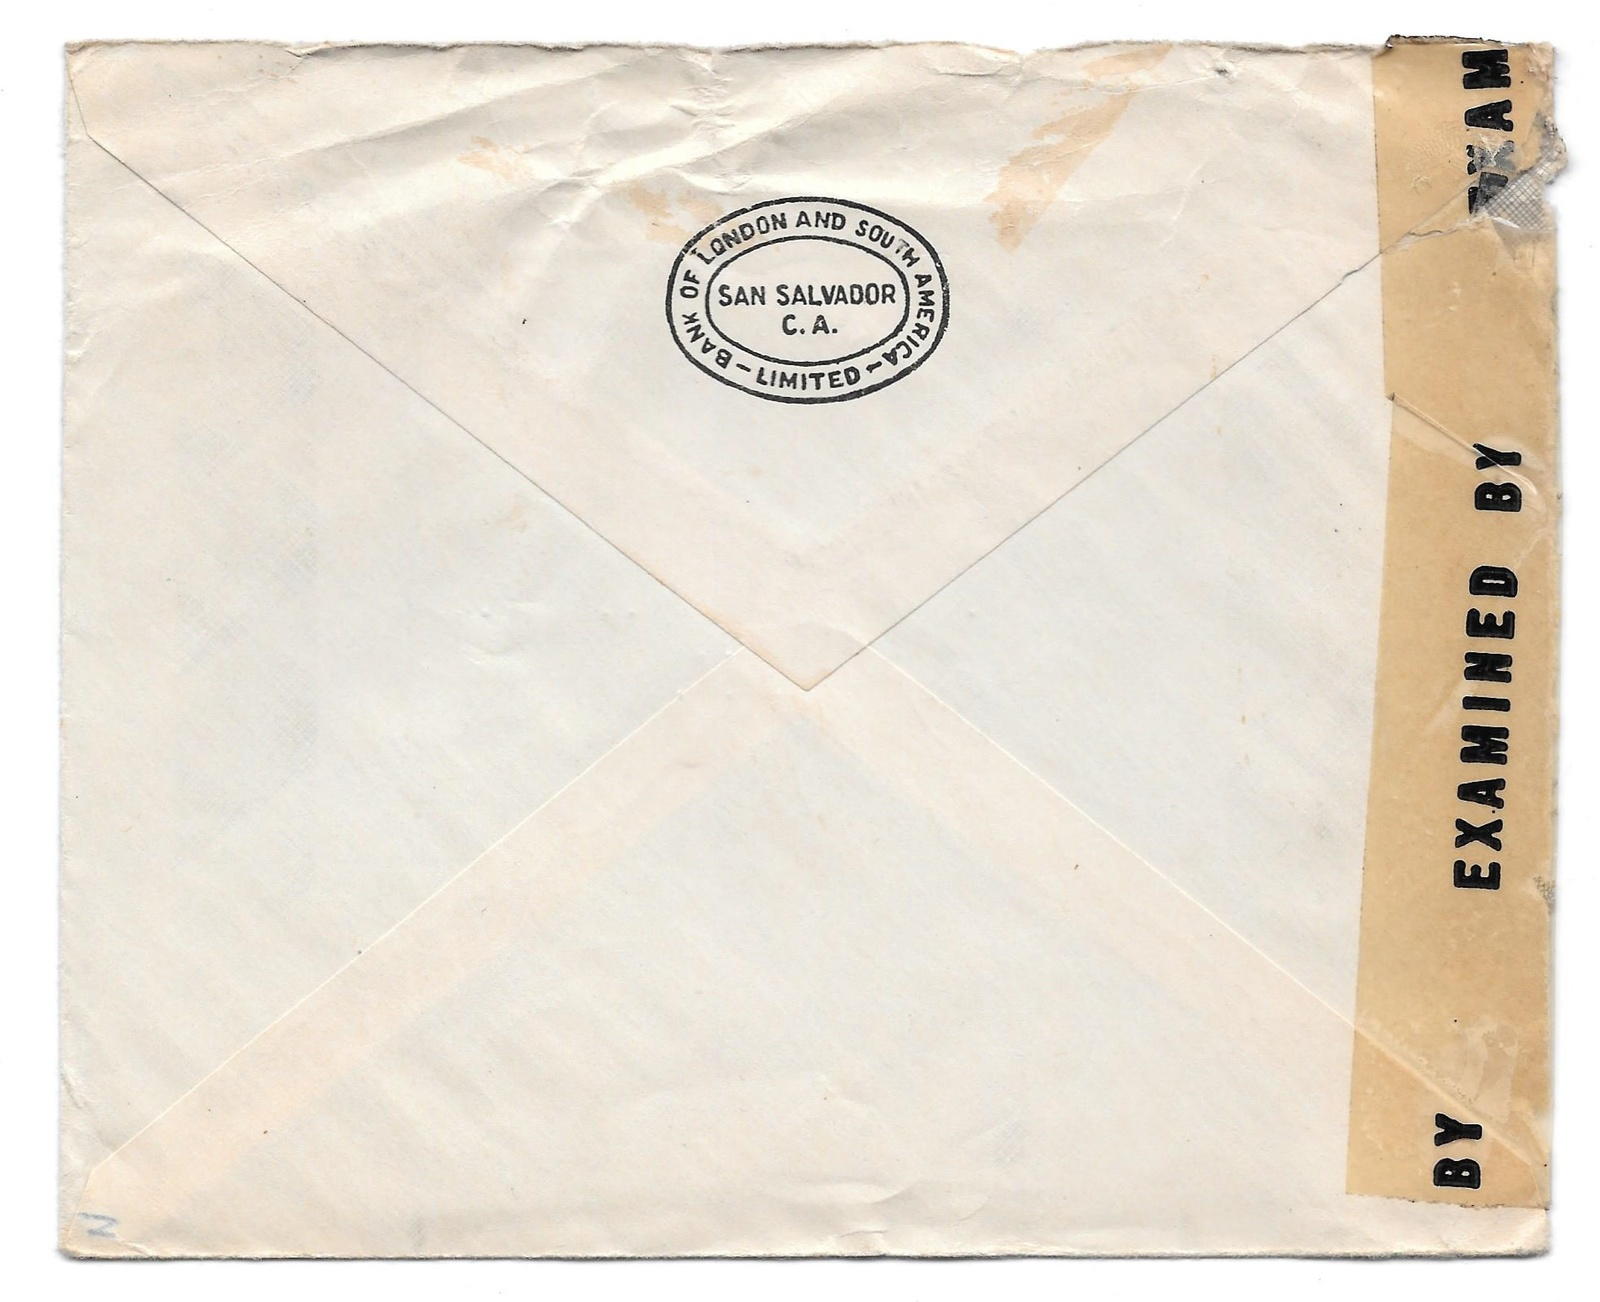 El Salvador Censored WWII Commercial Bank Cover to US 1944 Sc 578